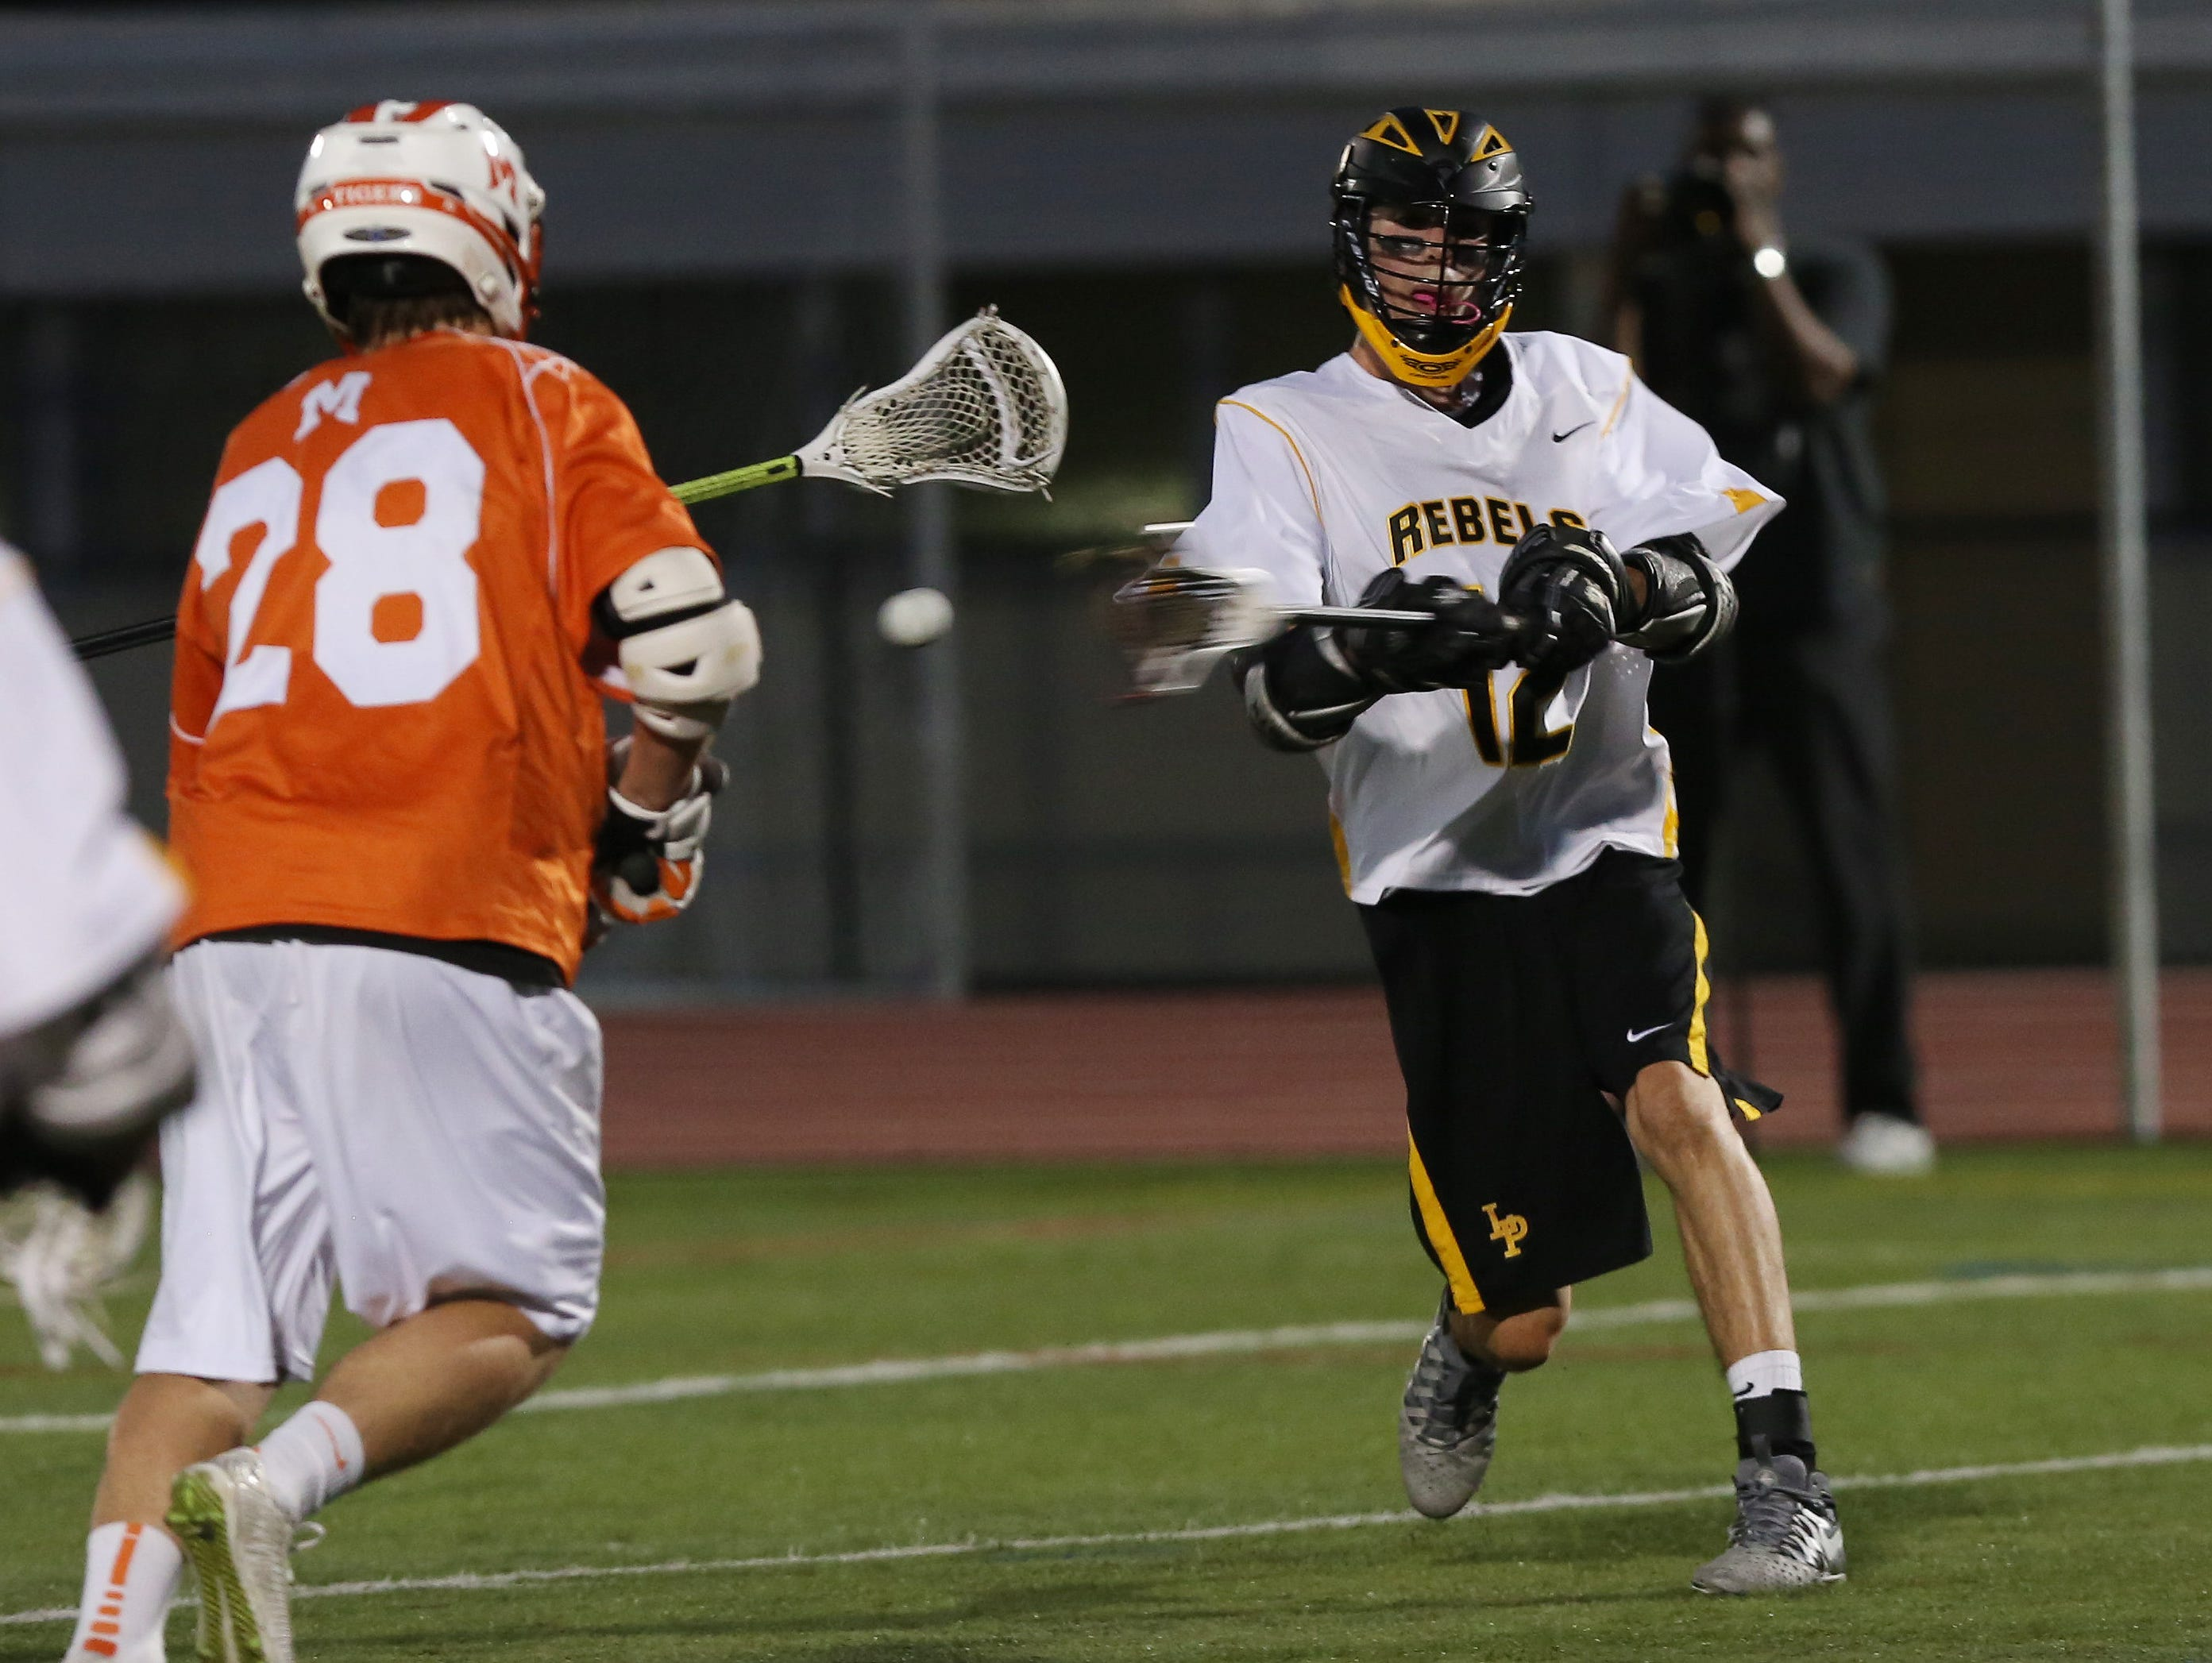 Lakeland/Panas' Drew Thompson (12) fires a shot in front of Mamaroneck's Se' McElroy (28) for a first half goal during the Section 1 championship game at White Plains High School May 25, 2016.